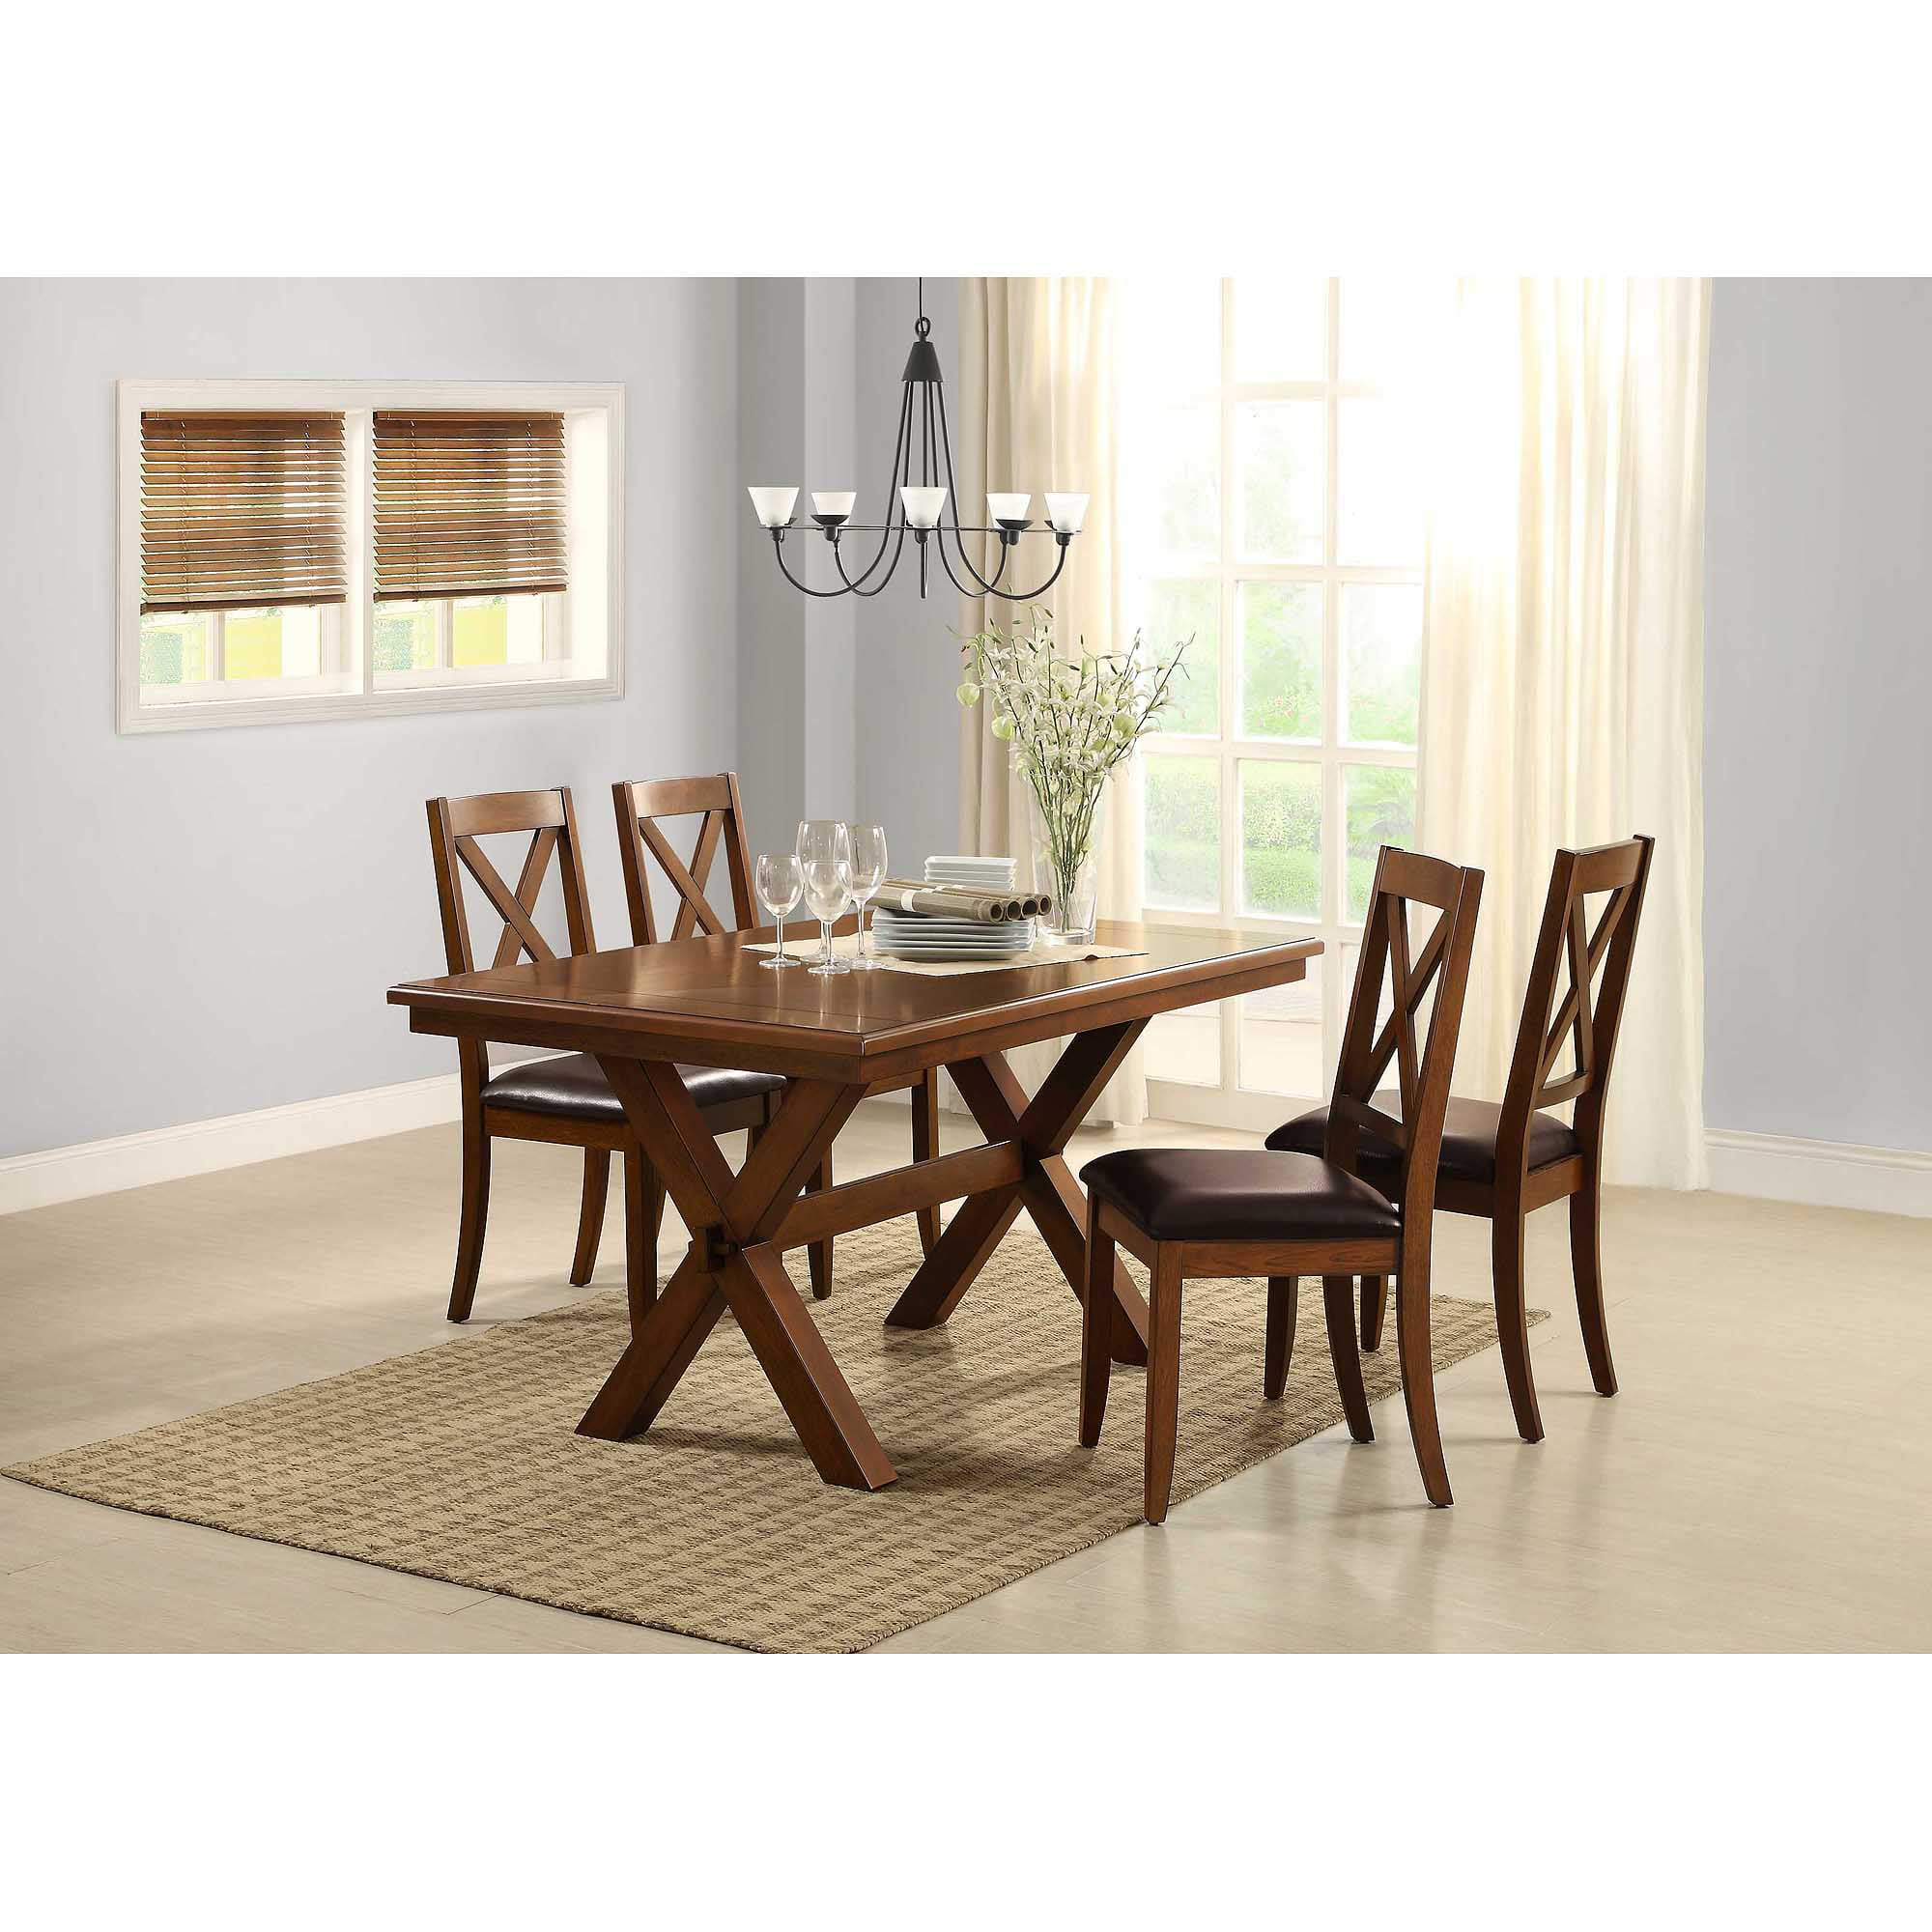 Dining Table better homes and gardens maddox crossing dining table, brown